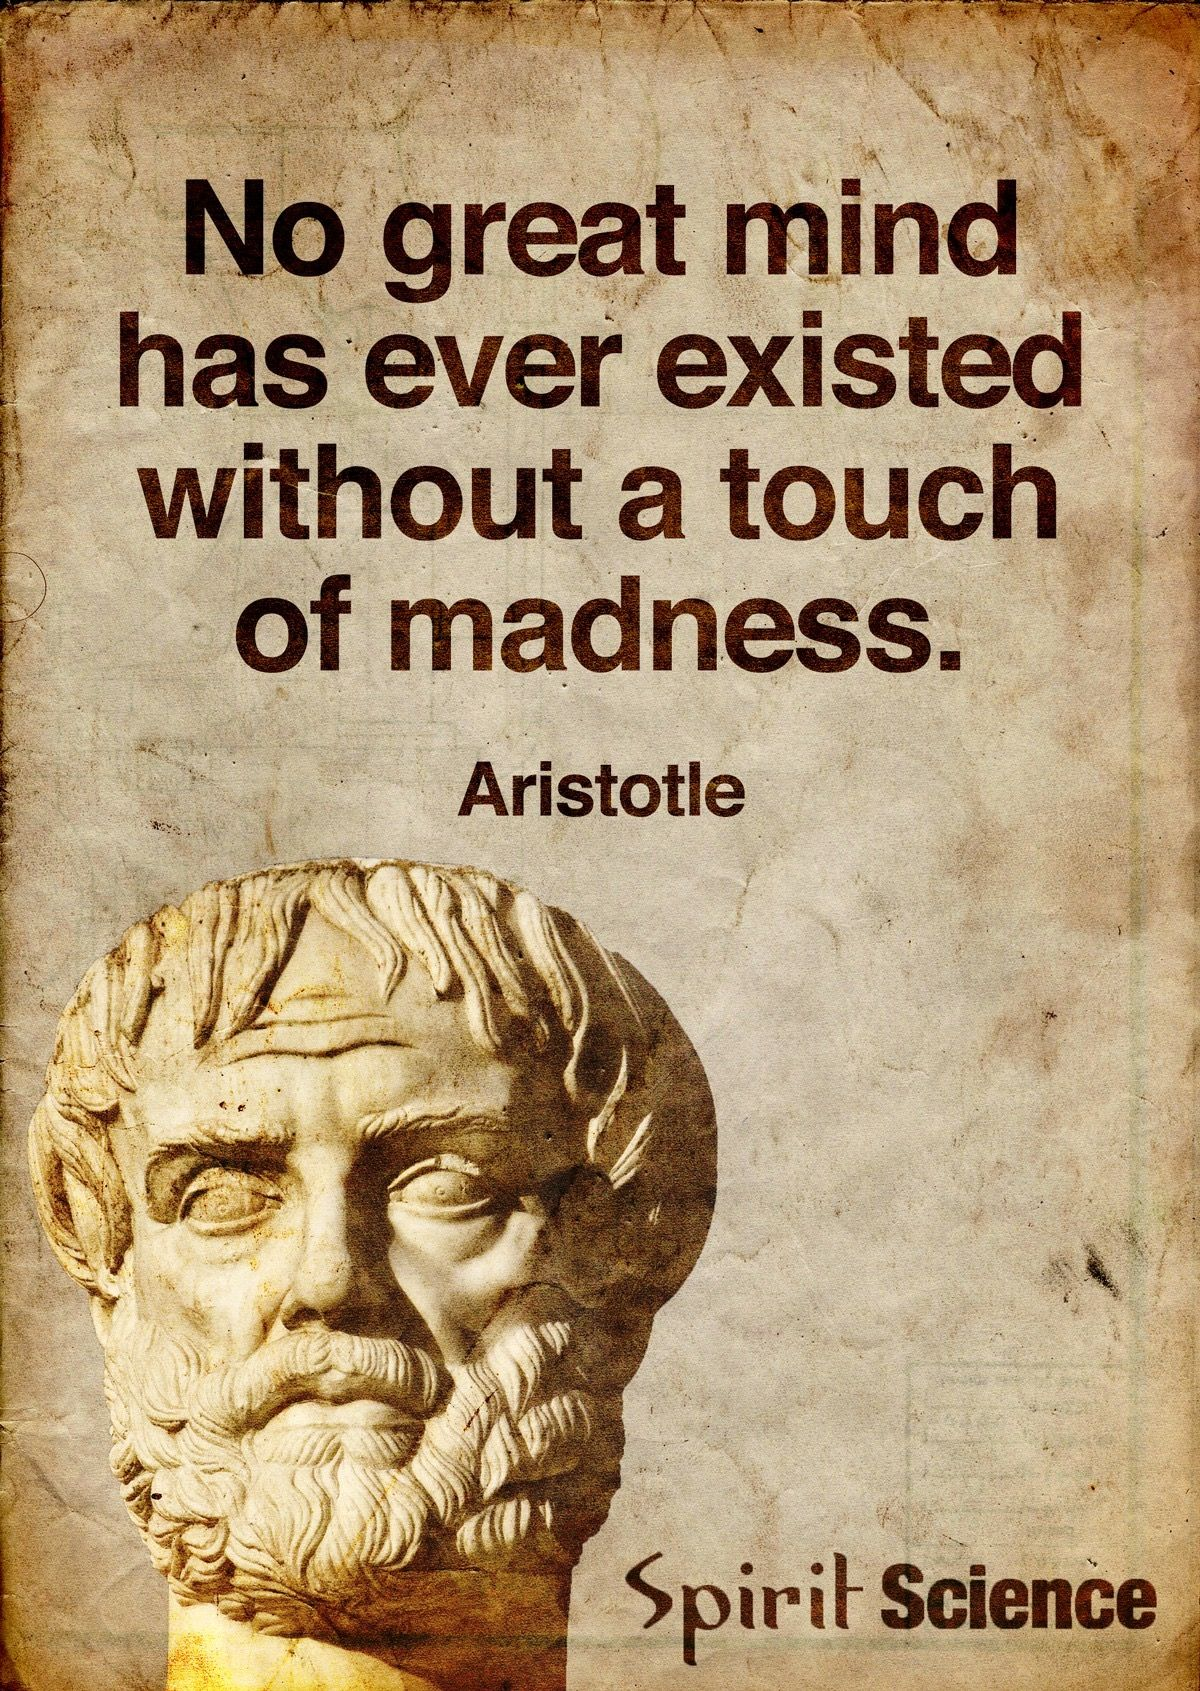 Pin By Merlin Lopez On Wallpaper Hd Aristotle Quotes Wisdom Quotes Historical Quotes